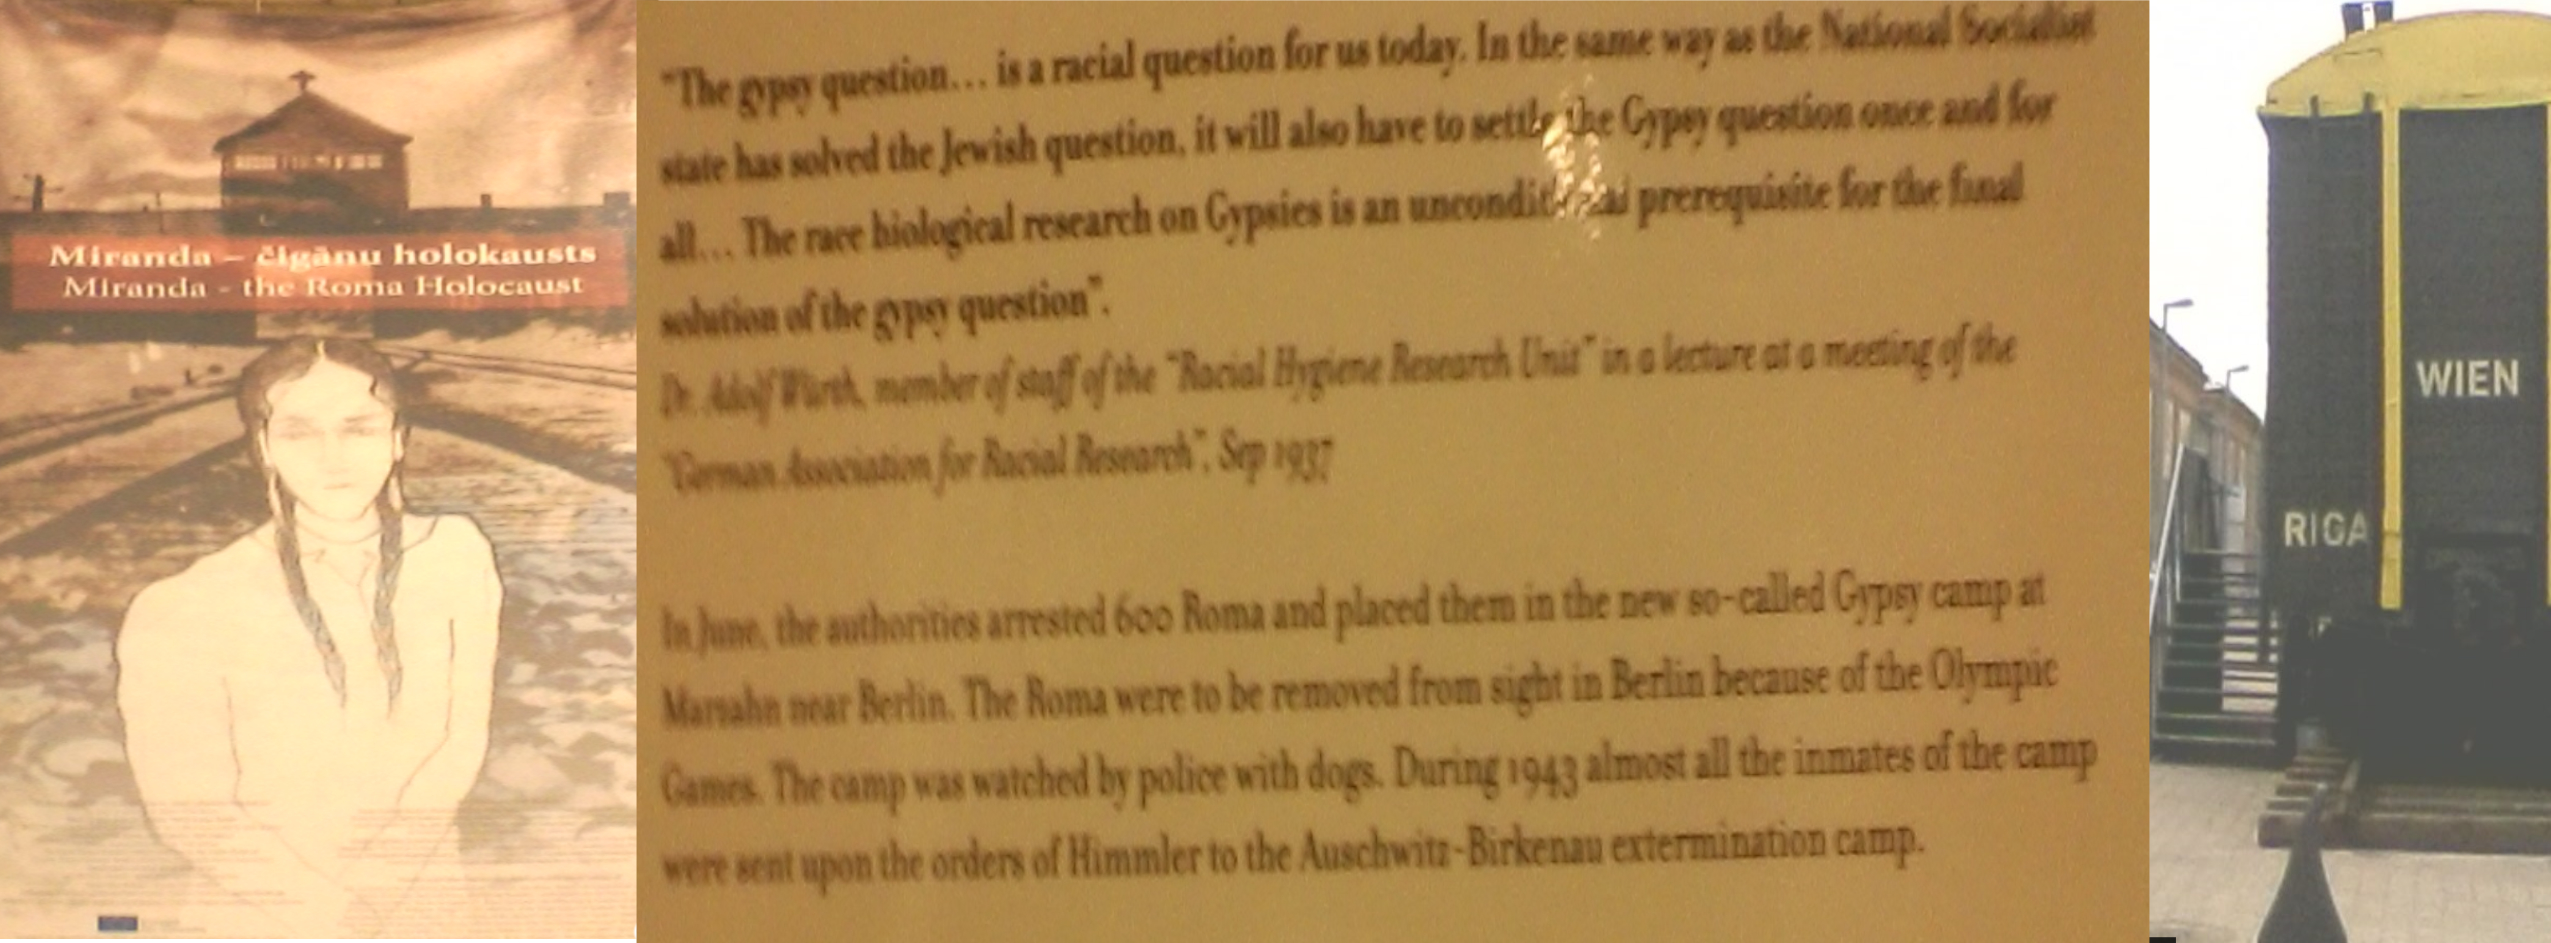 Gypsy question - in the same way as the national socialist state has solved the Jewish question